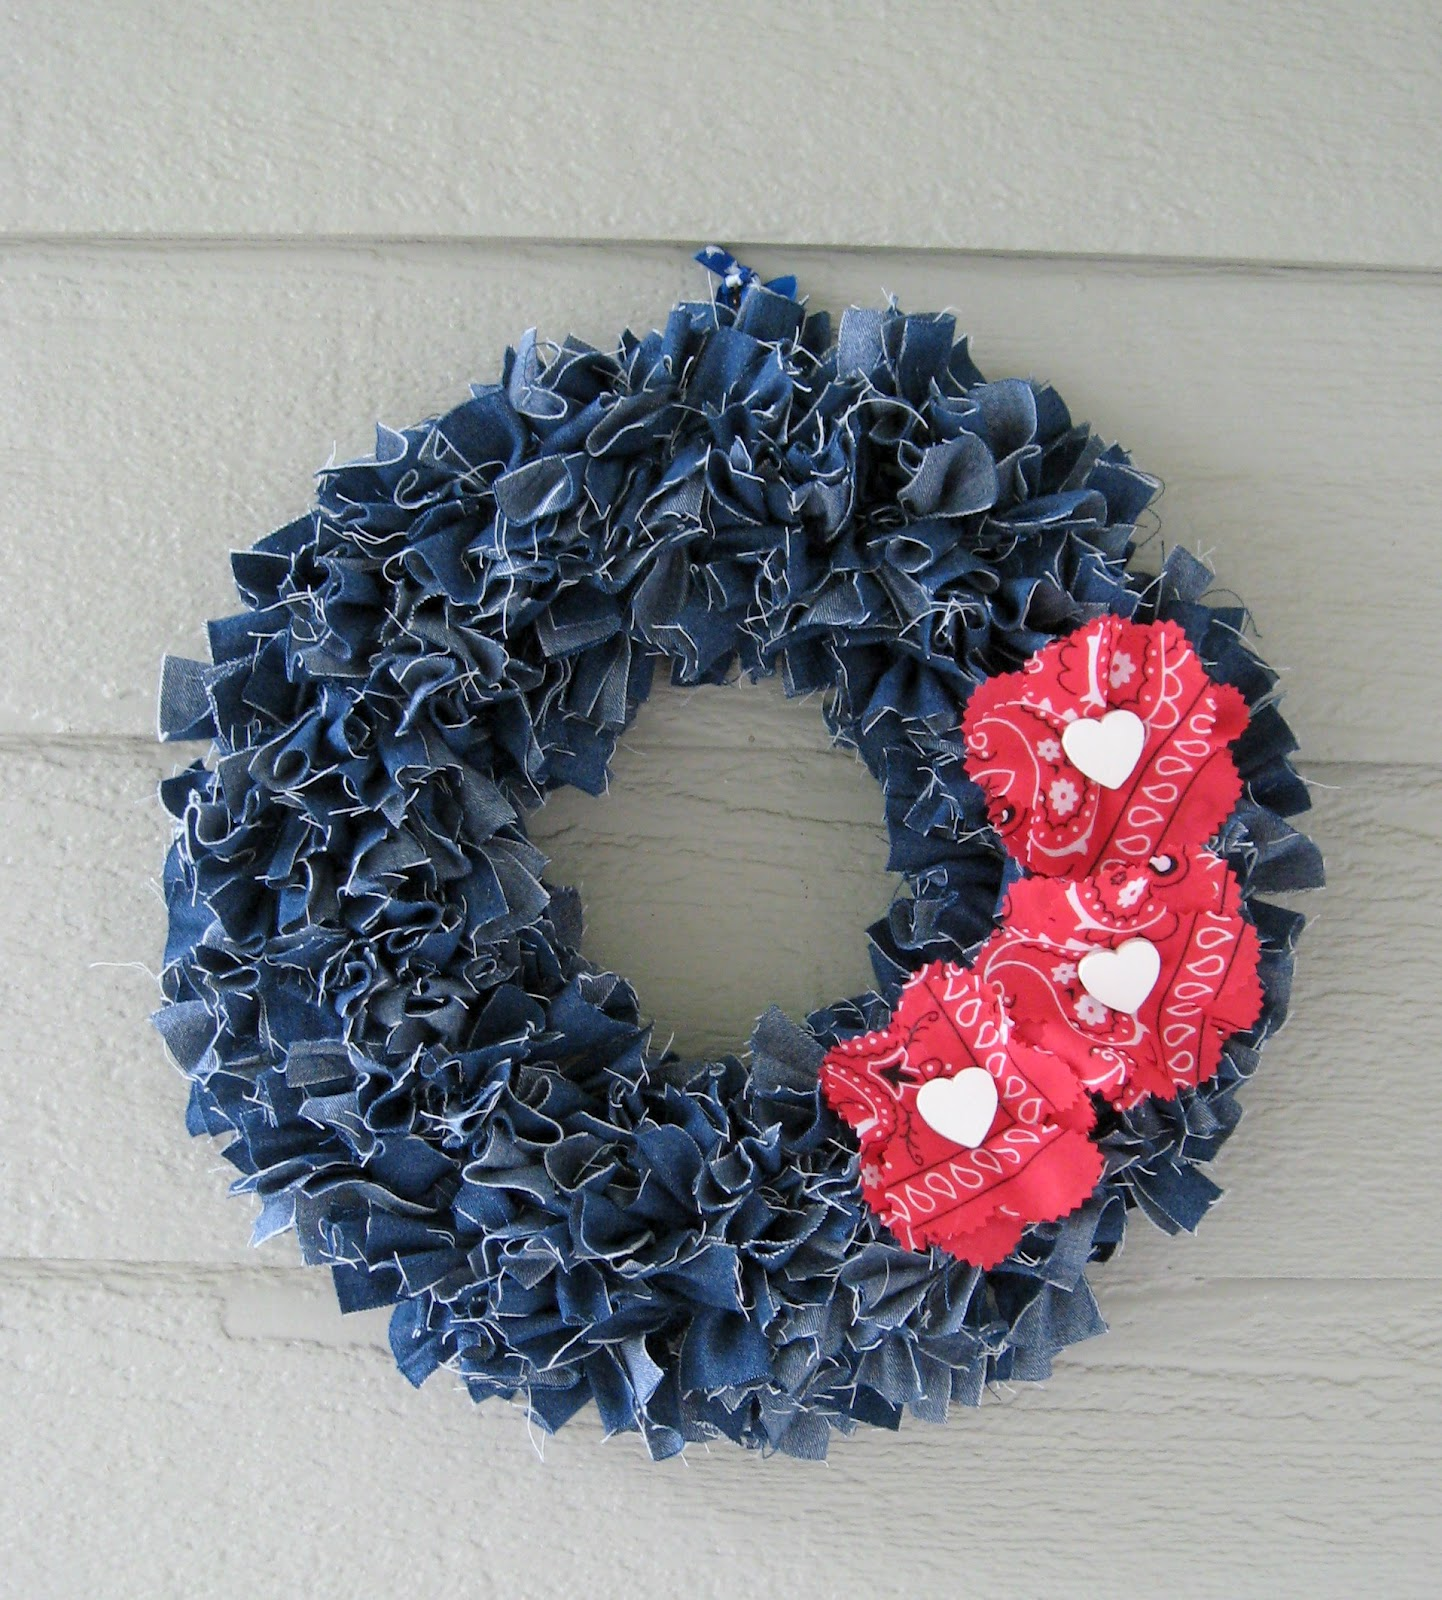 Denim Rags Wreath Tutorial By A Fish Who Likes Flowers